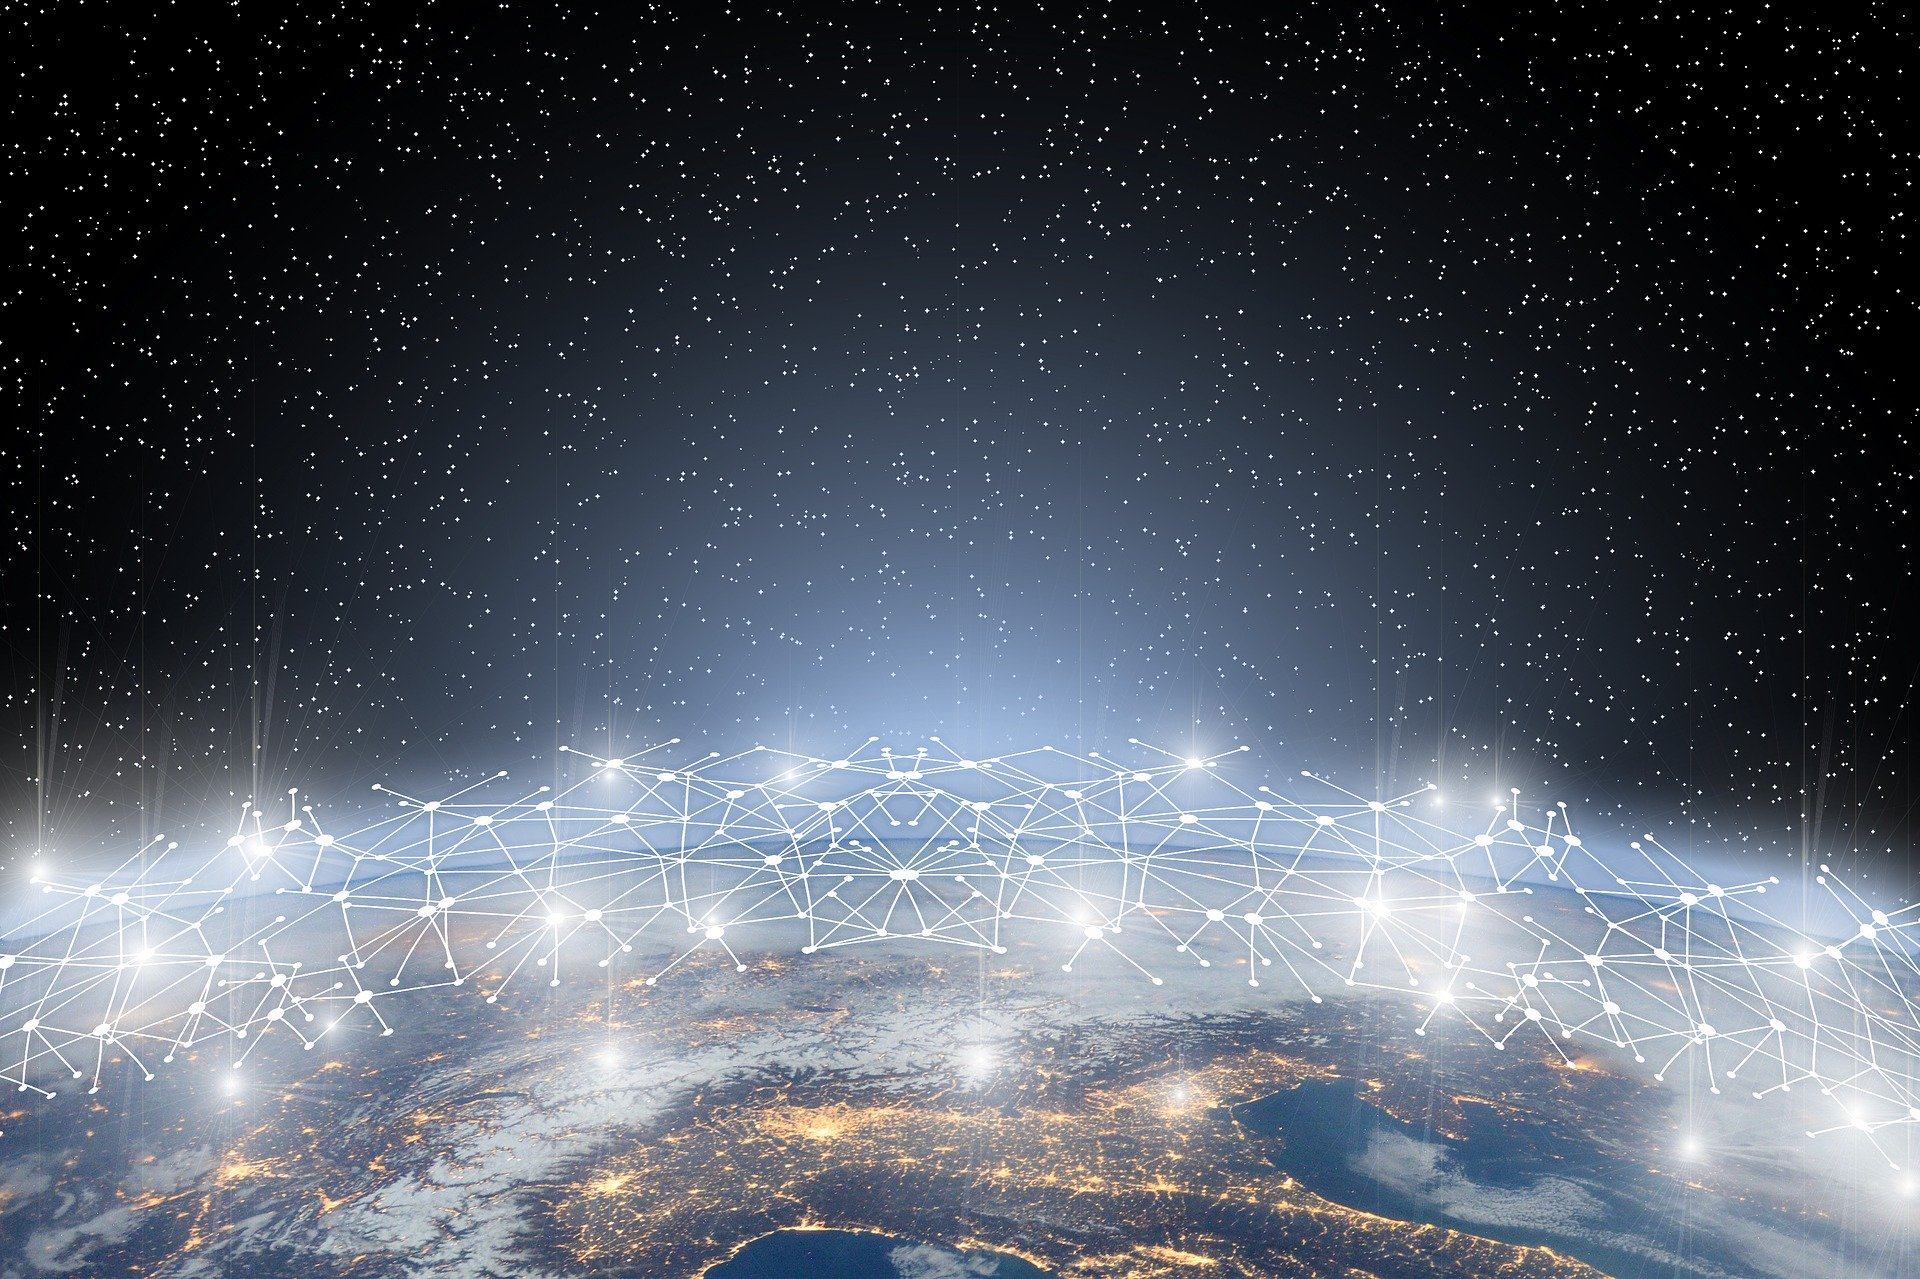 Swiss-made IoT Connectivity deployed throughout the world: Swisscom and Nexxiot advance their strategic partnership